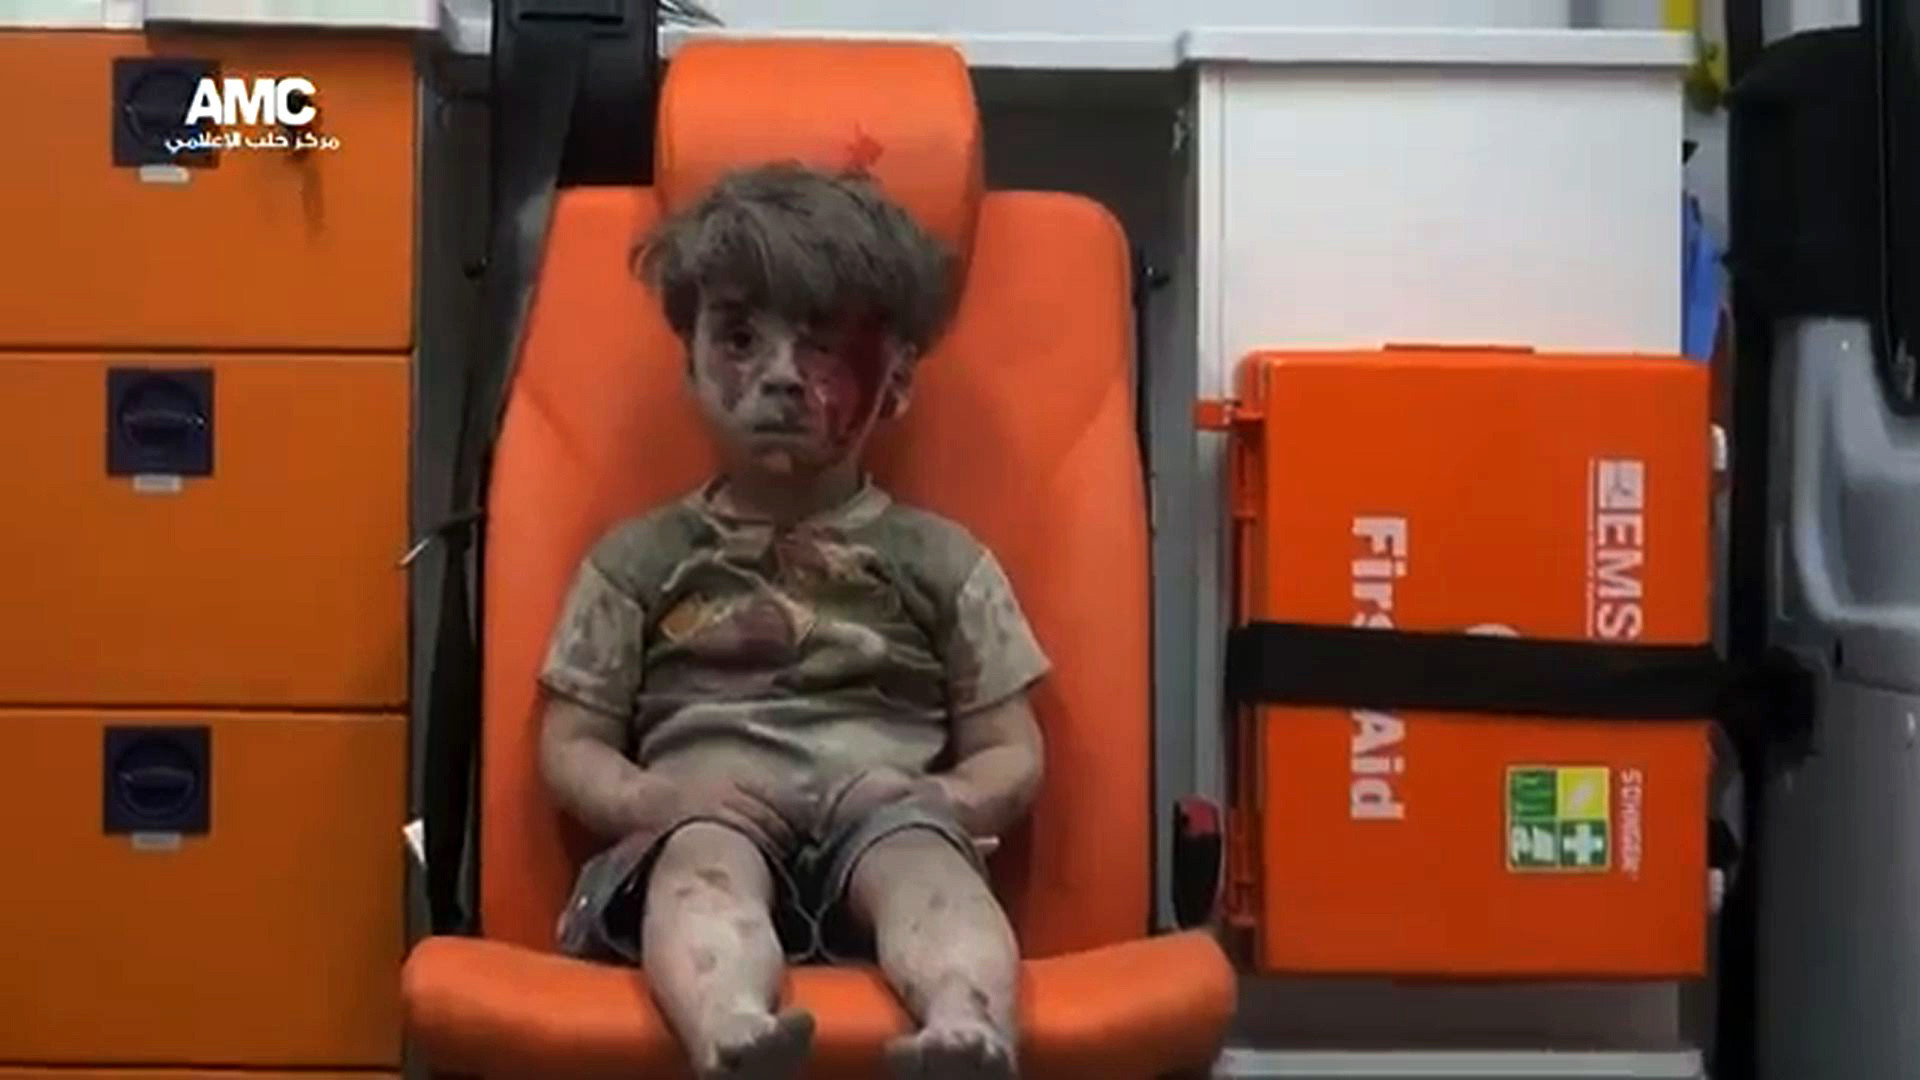 Syrian boy in ambulance